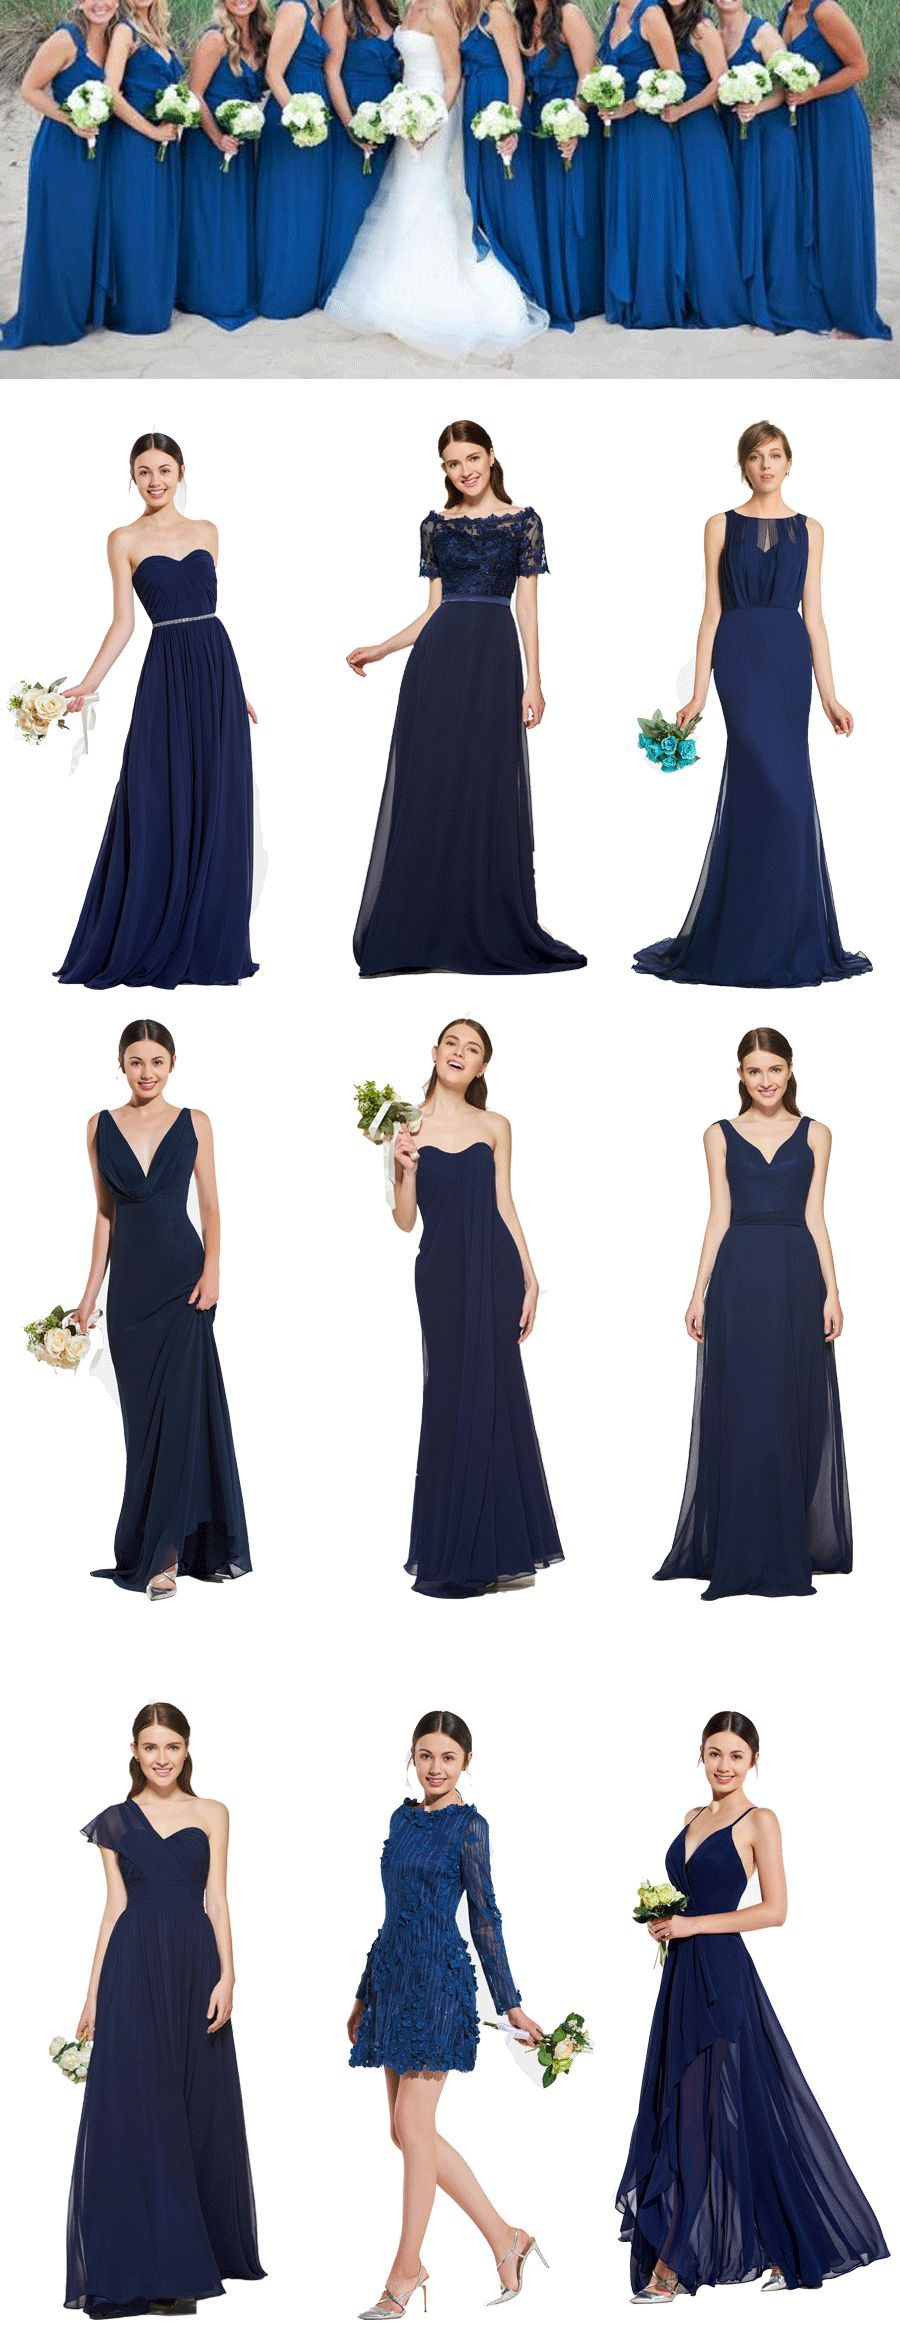 Sweetheart aline backless bridesmaid dress in all dressed up